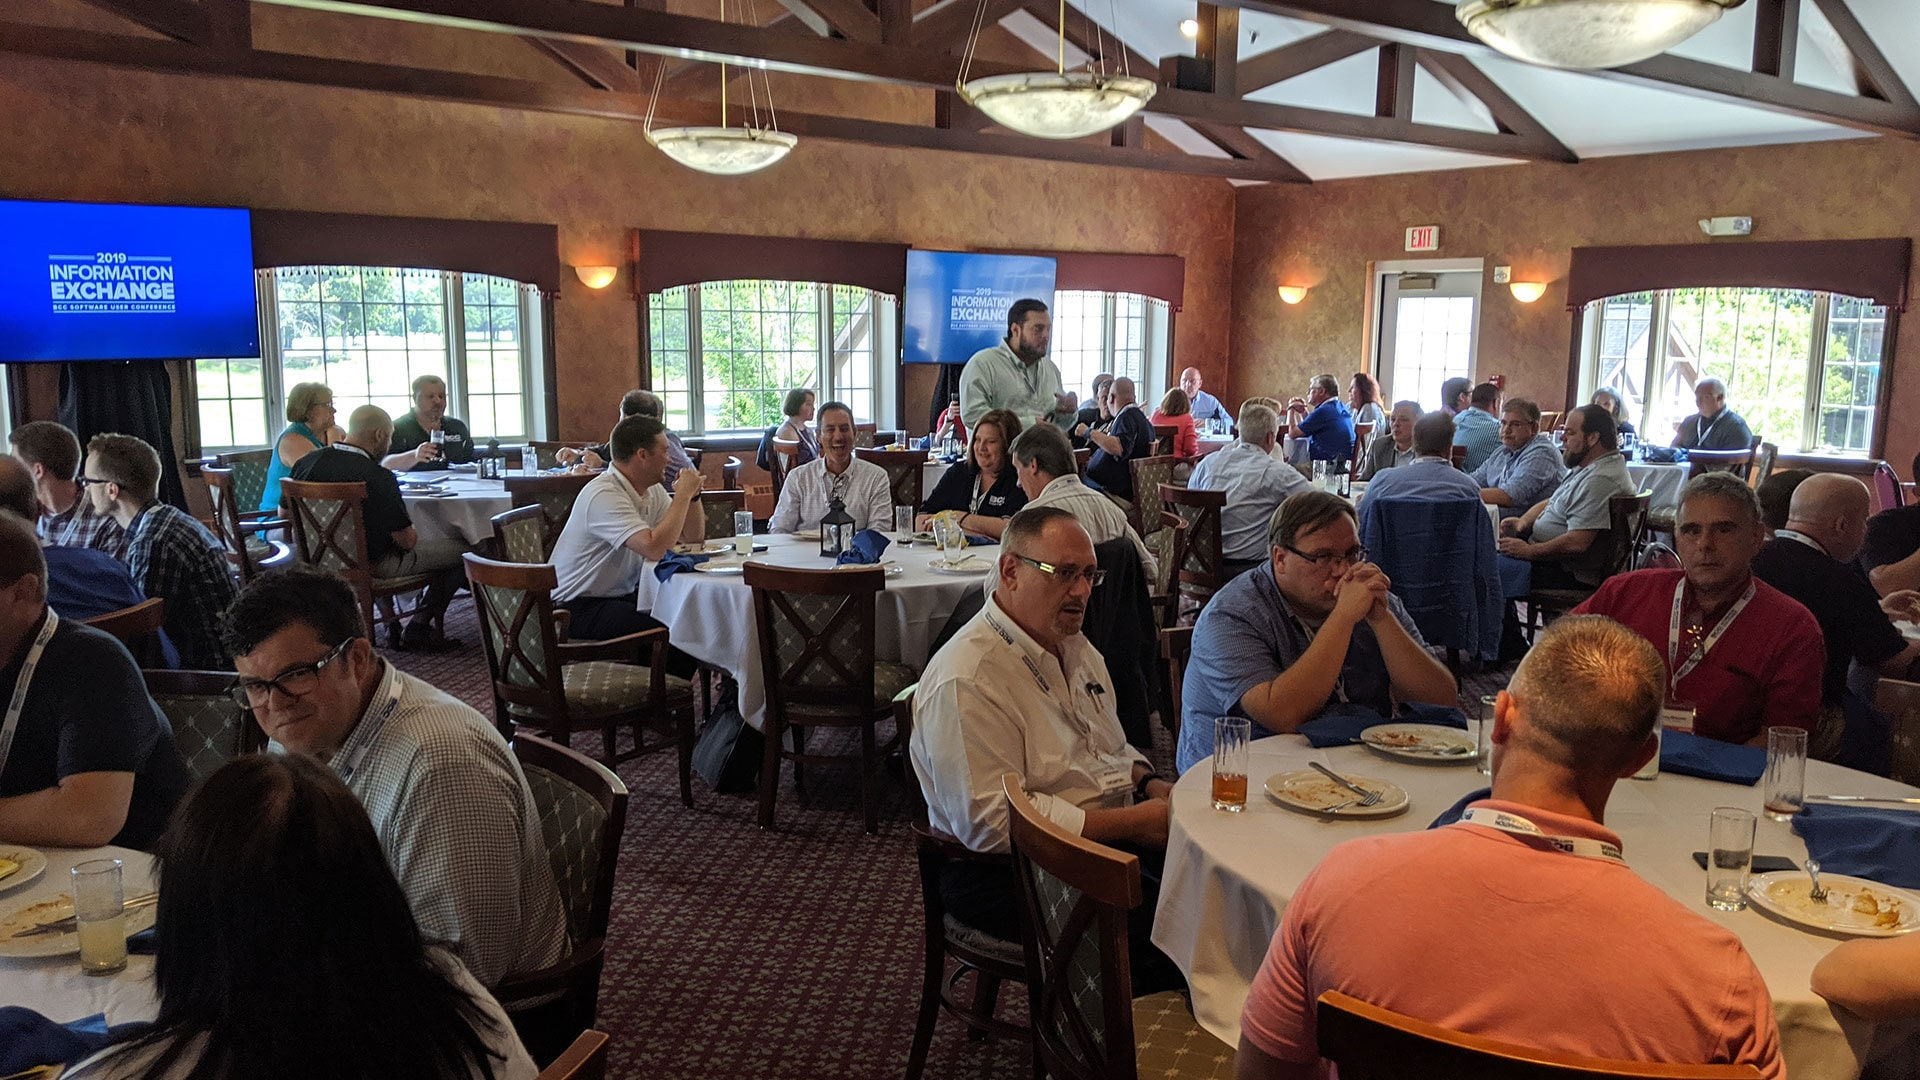 Attendees enjoying lunch at Brook-Lea